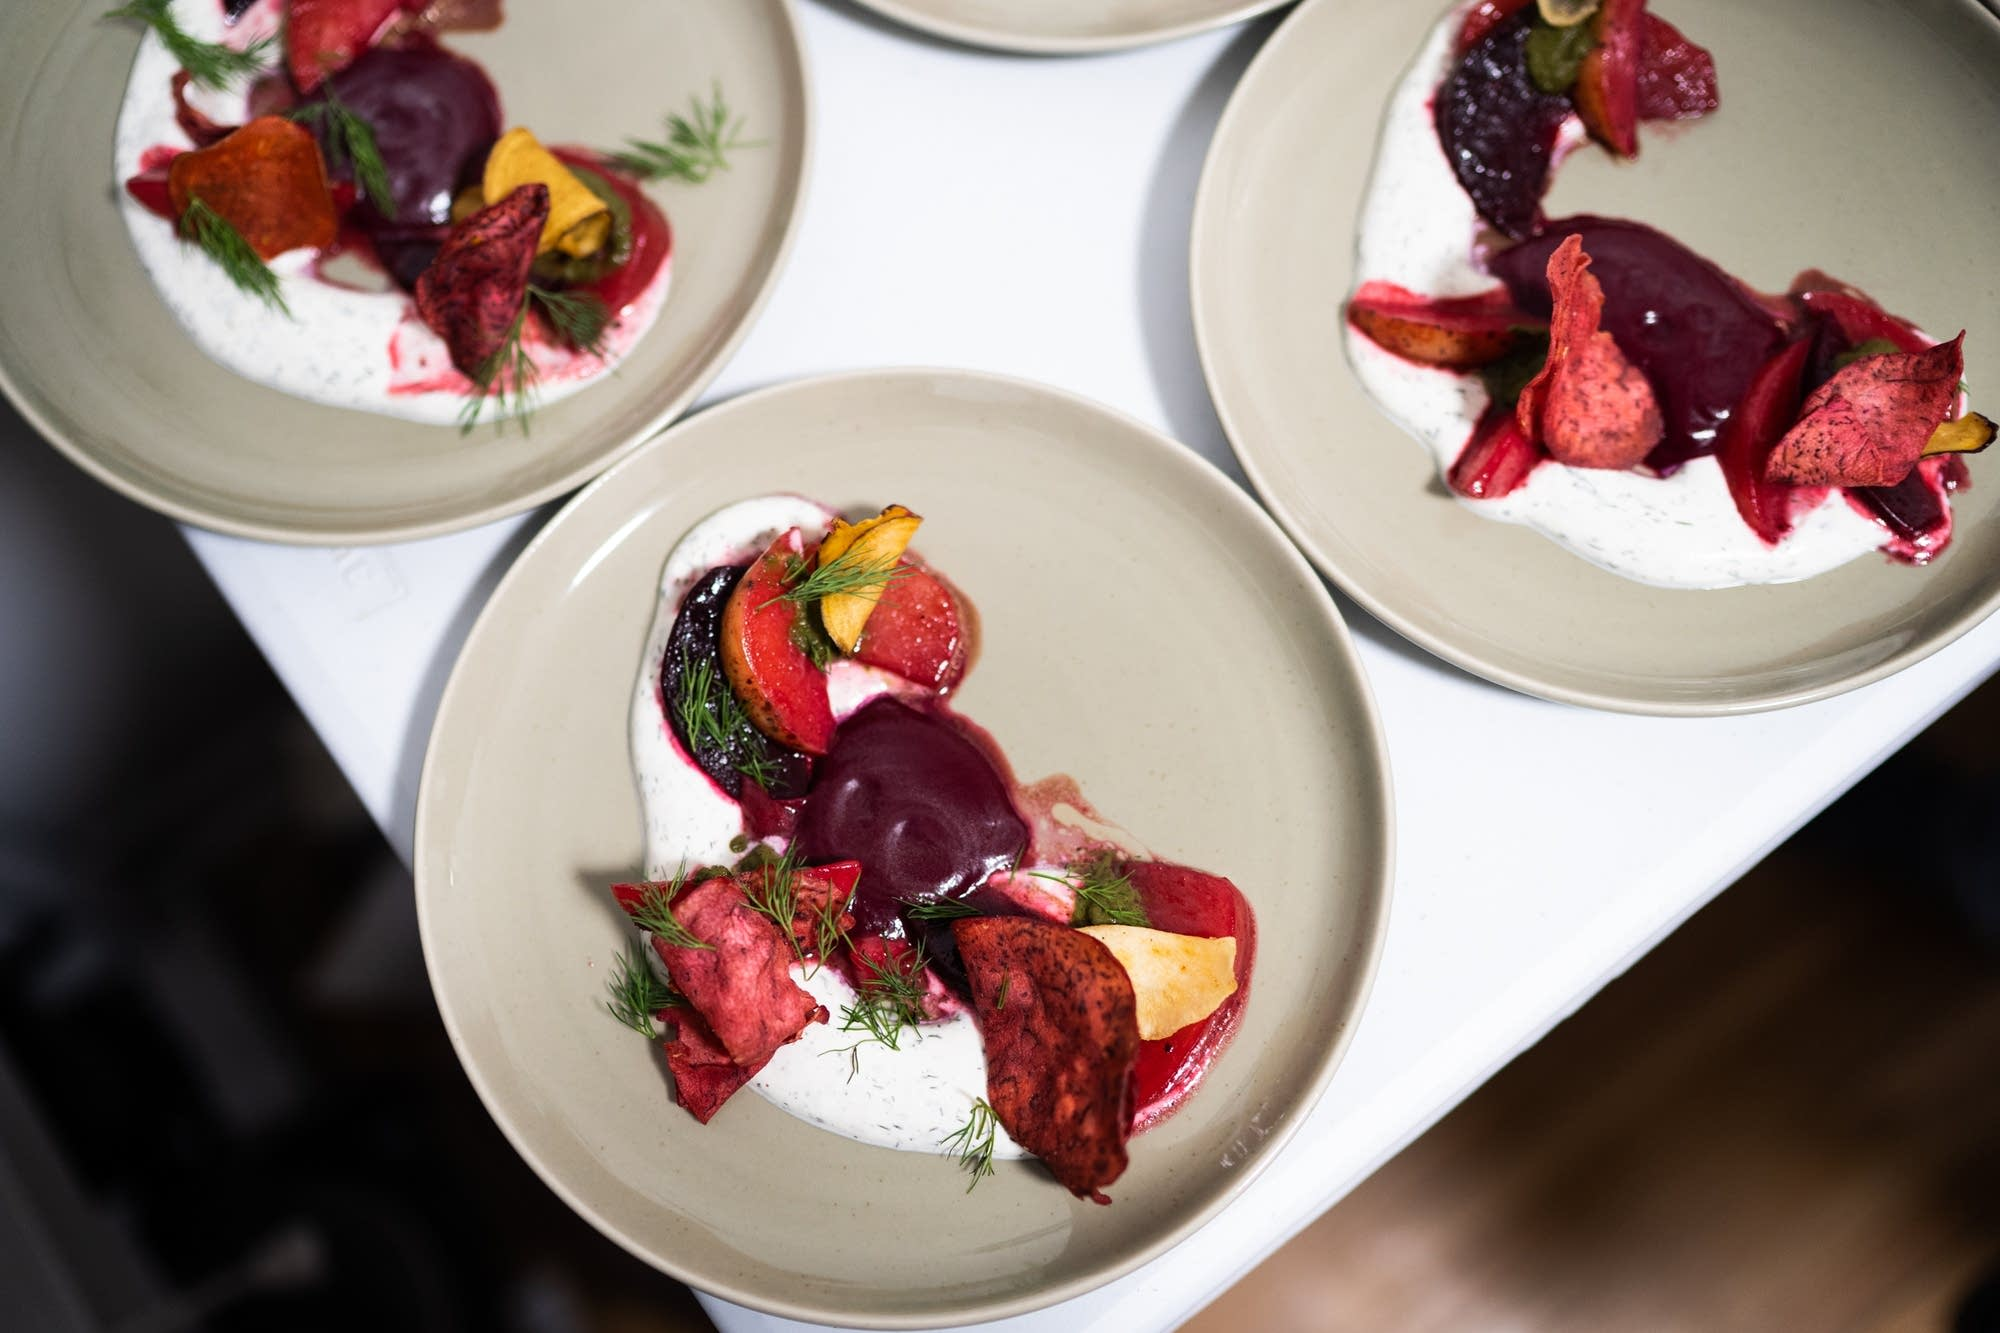 Roasted and fried root vegetables, dill sour cream, beet green puree.